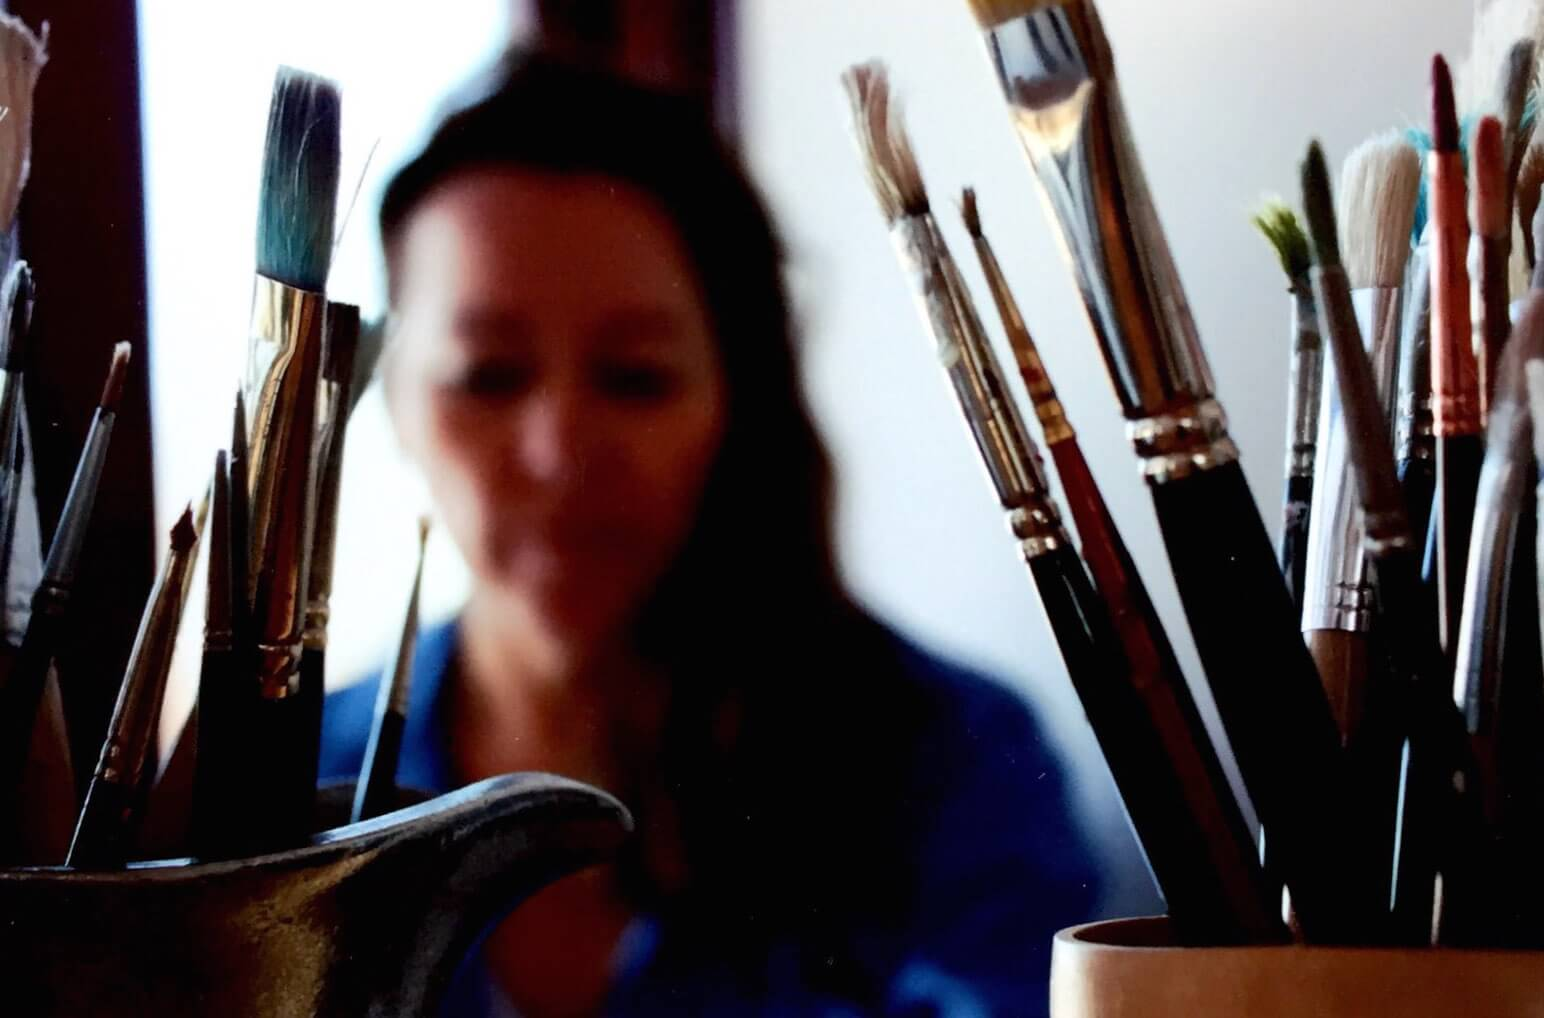 close up of cups of paintbrushes with blurred woman in background